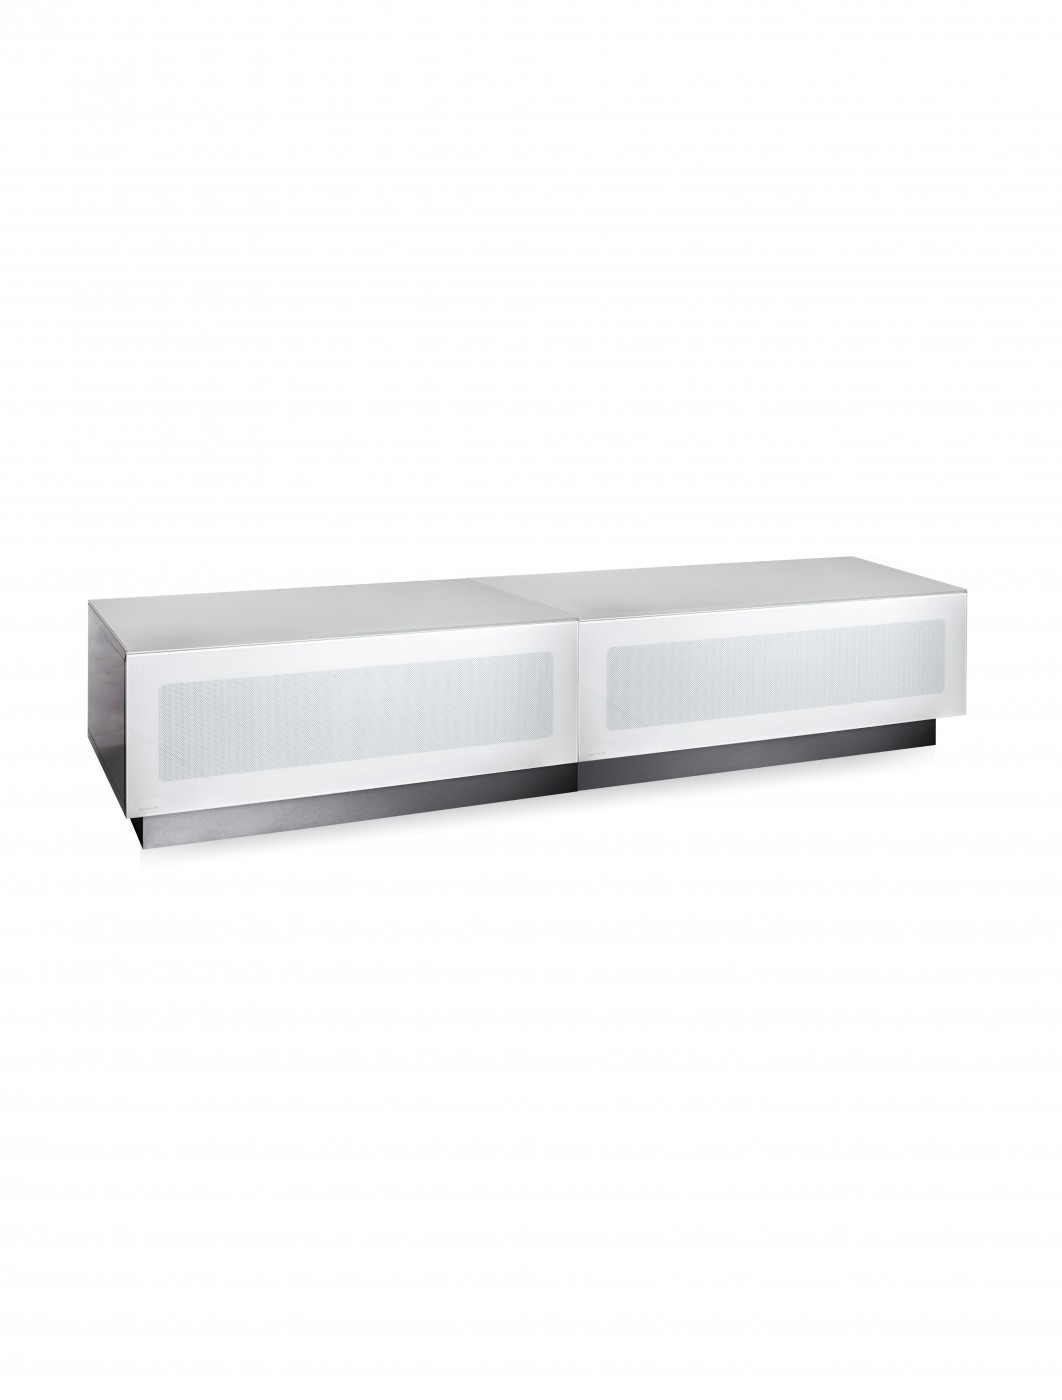 TV Stand Element Modular EMTMOD1700-WHI White TV Stand with Glass Top